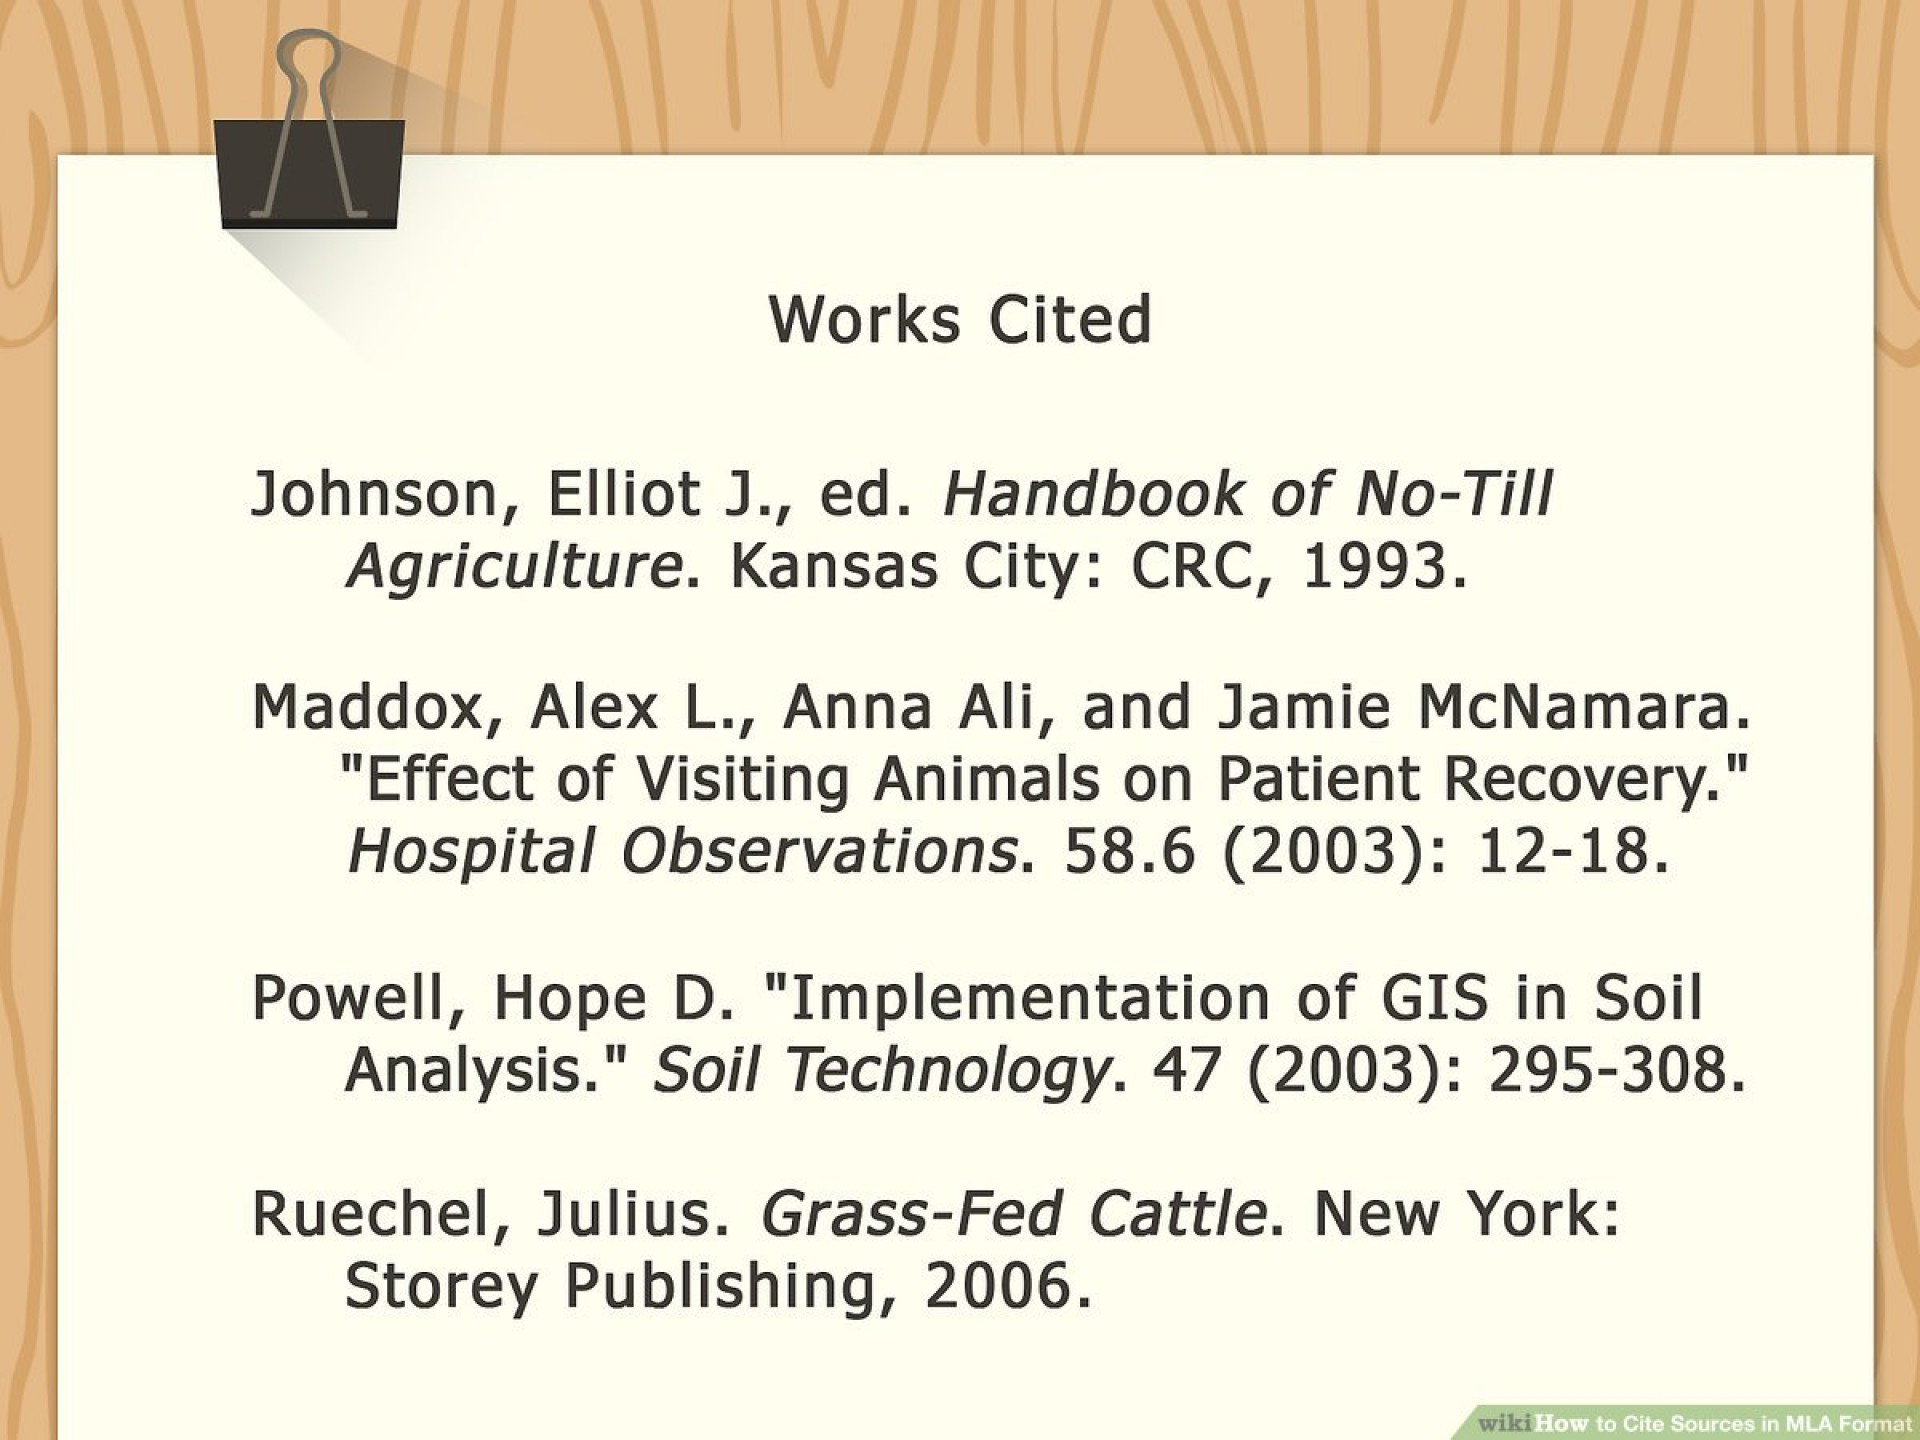 010 Aid372891 V4 1200px Cite Sources In Mla Format Step Version Research Paper Imposing Citation Text Citing A 1920